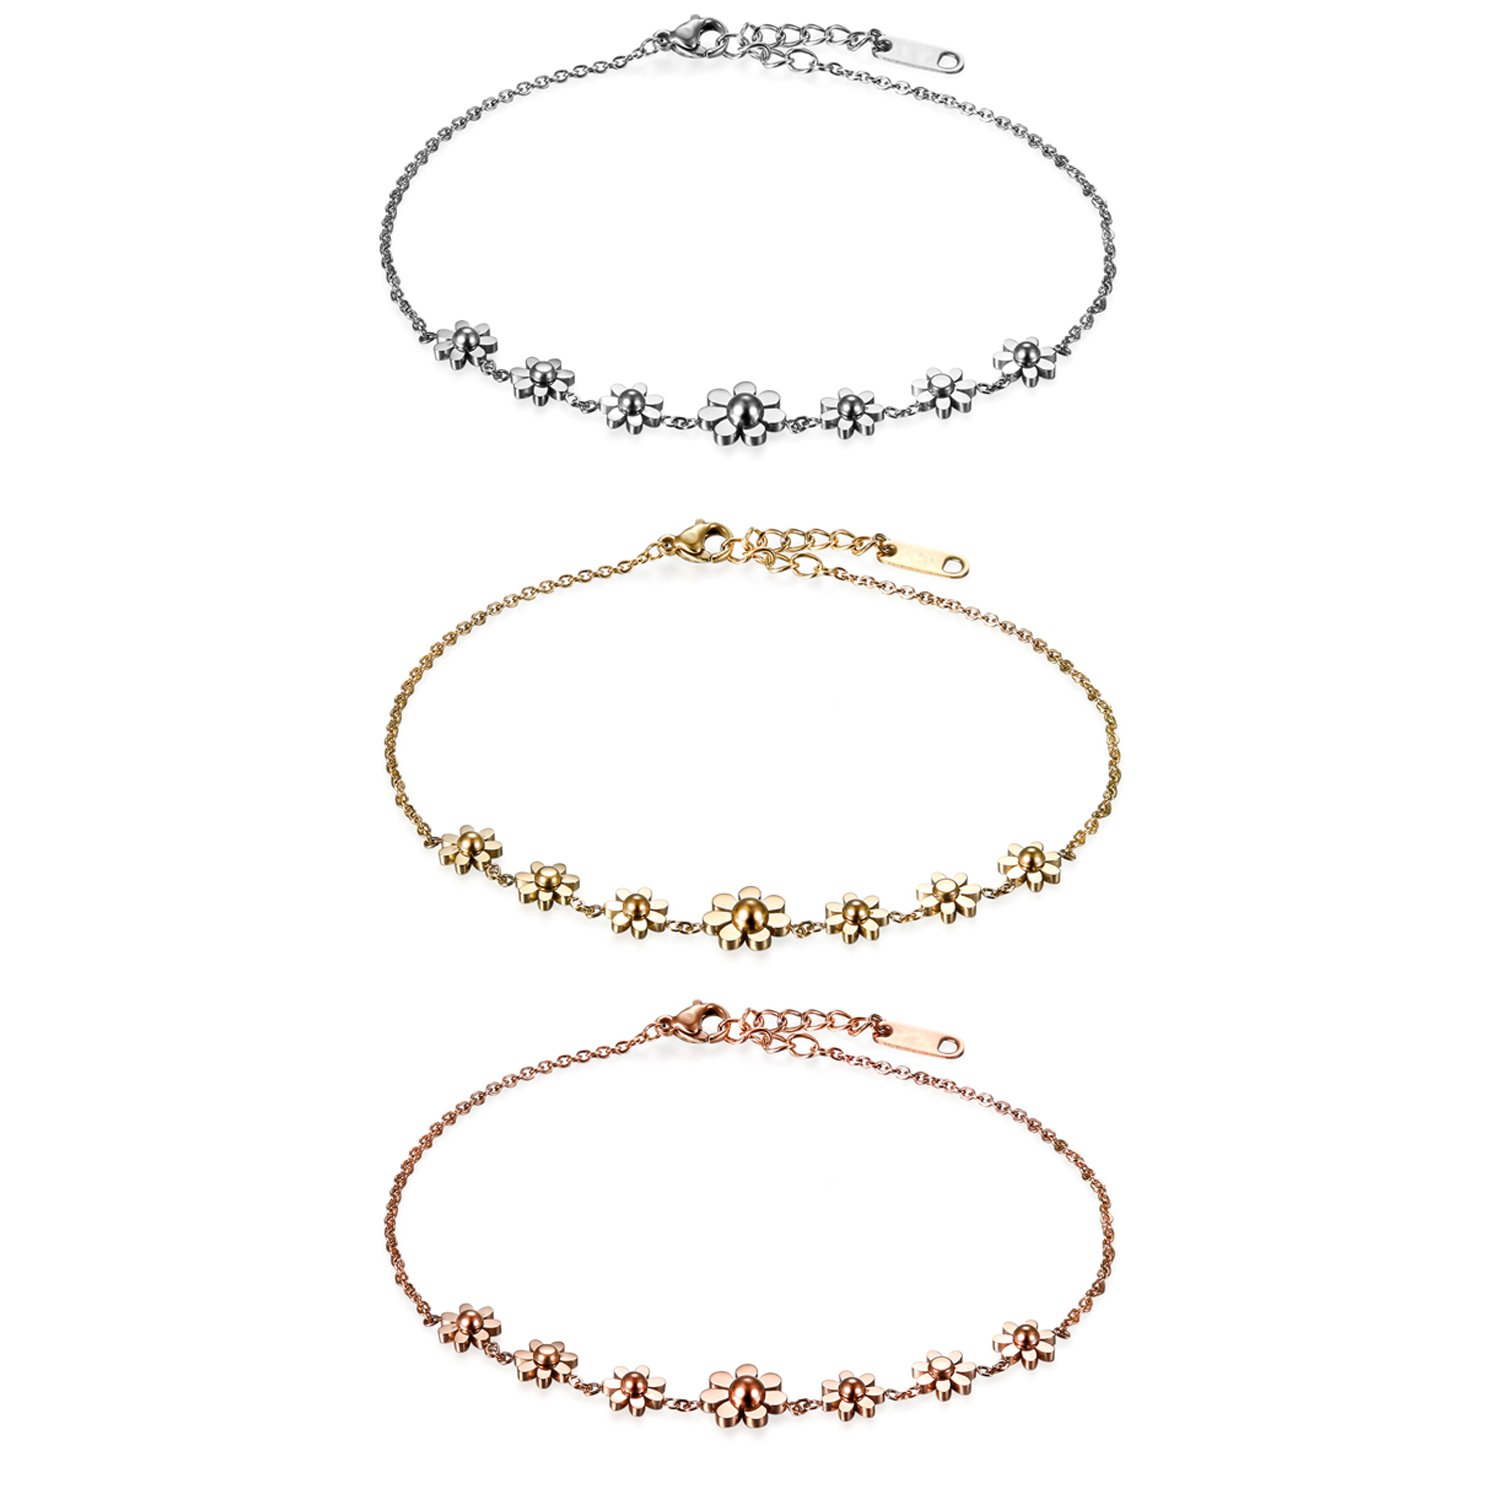 Flongo Womens Girls 3PCS Vintage Stainless Steel Daisy Flowers Link Bracelet Birthday Valentine Daisy Anklet for Women, 8.66 inch